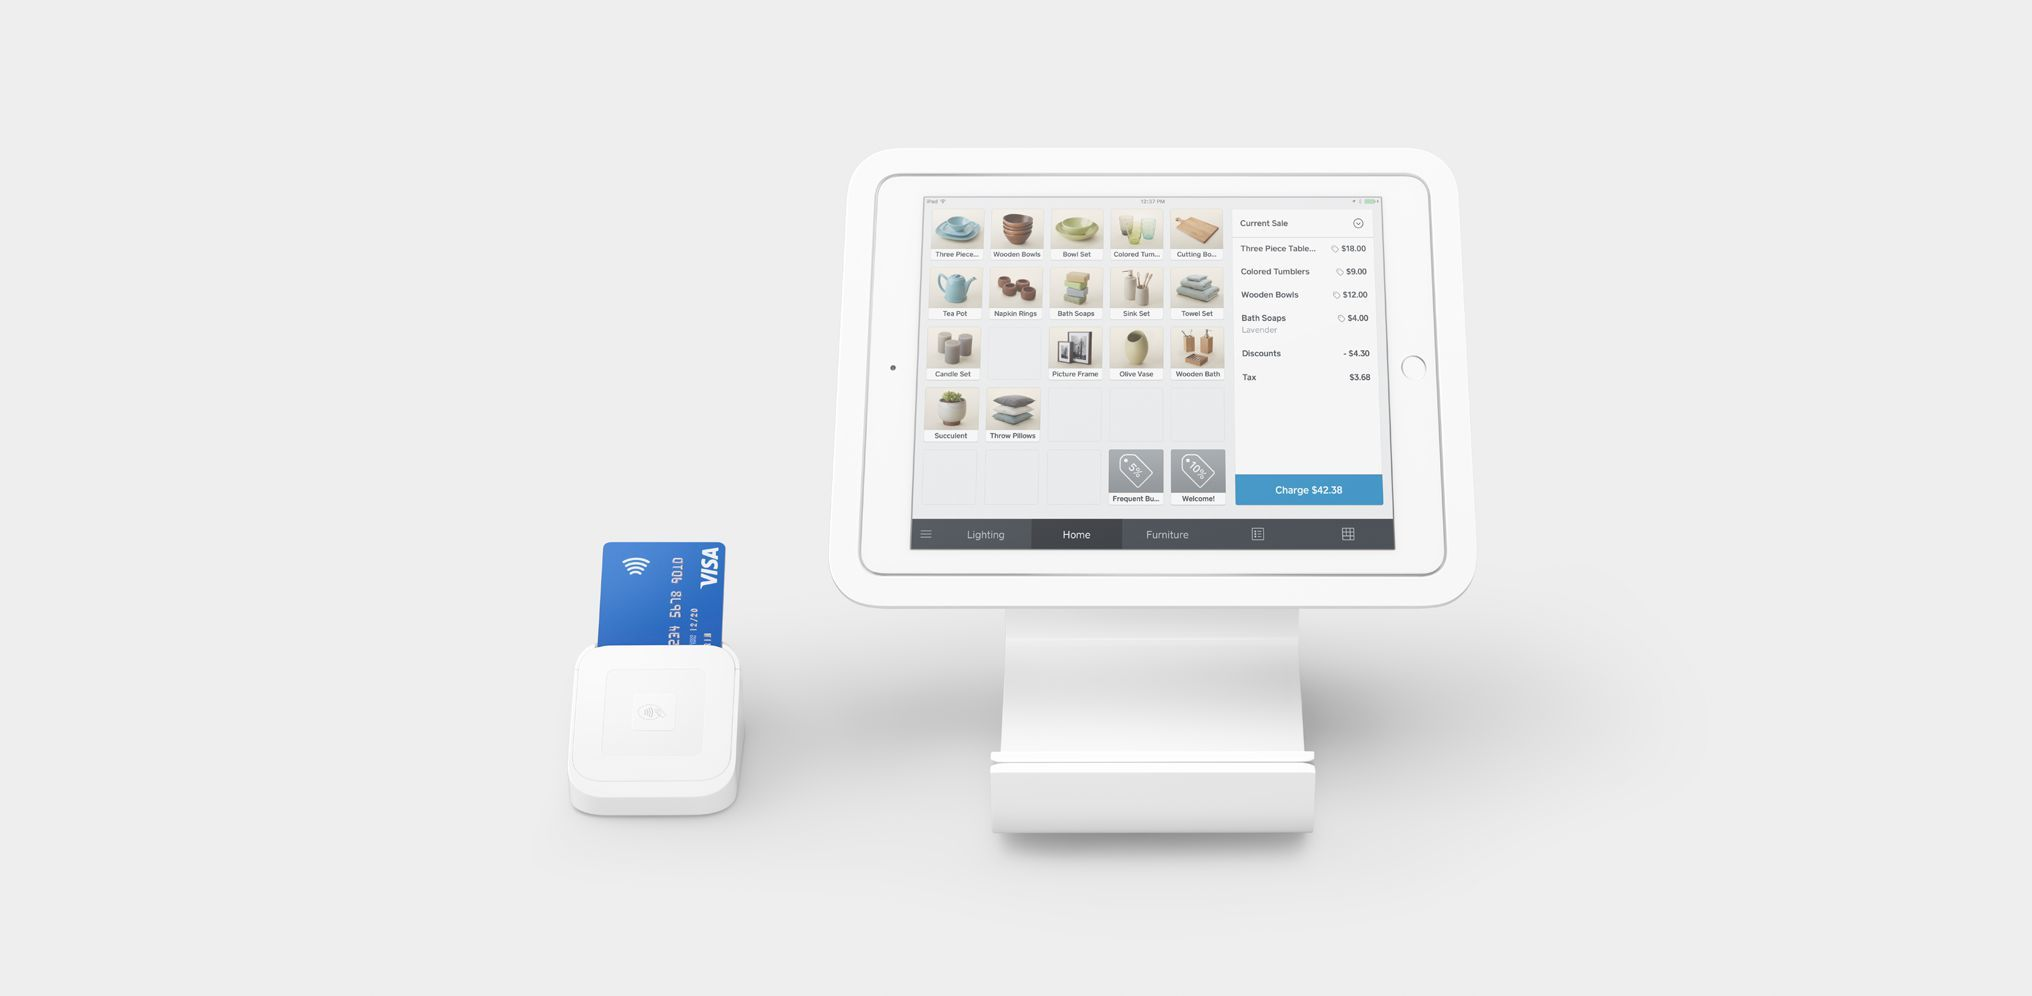 Tablet with Square POS and Credit Card Reader